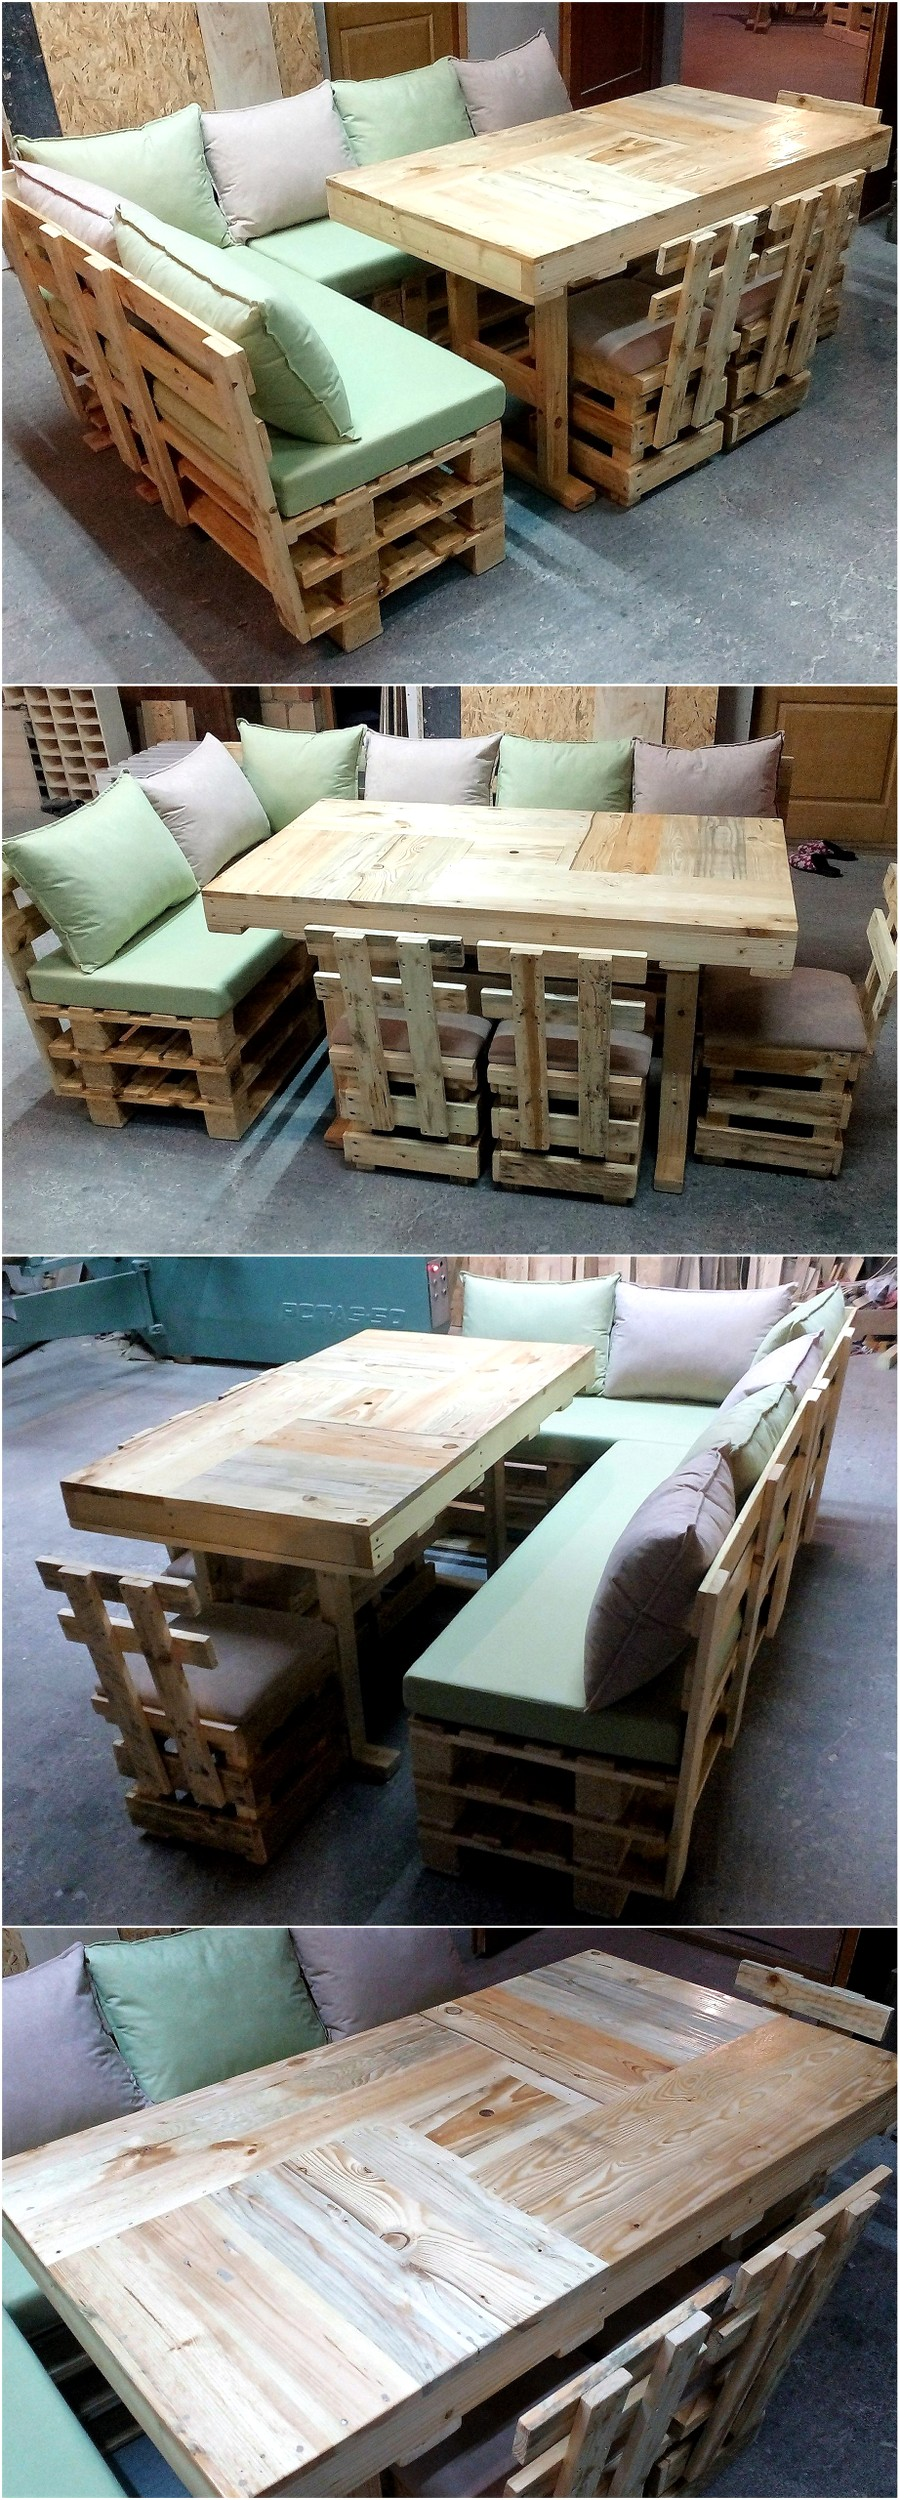 Simple Idea for Recycled Wooden Pallet Sofa